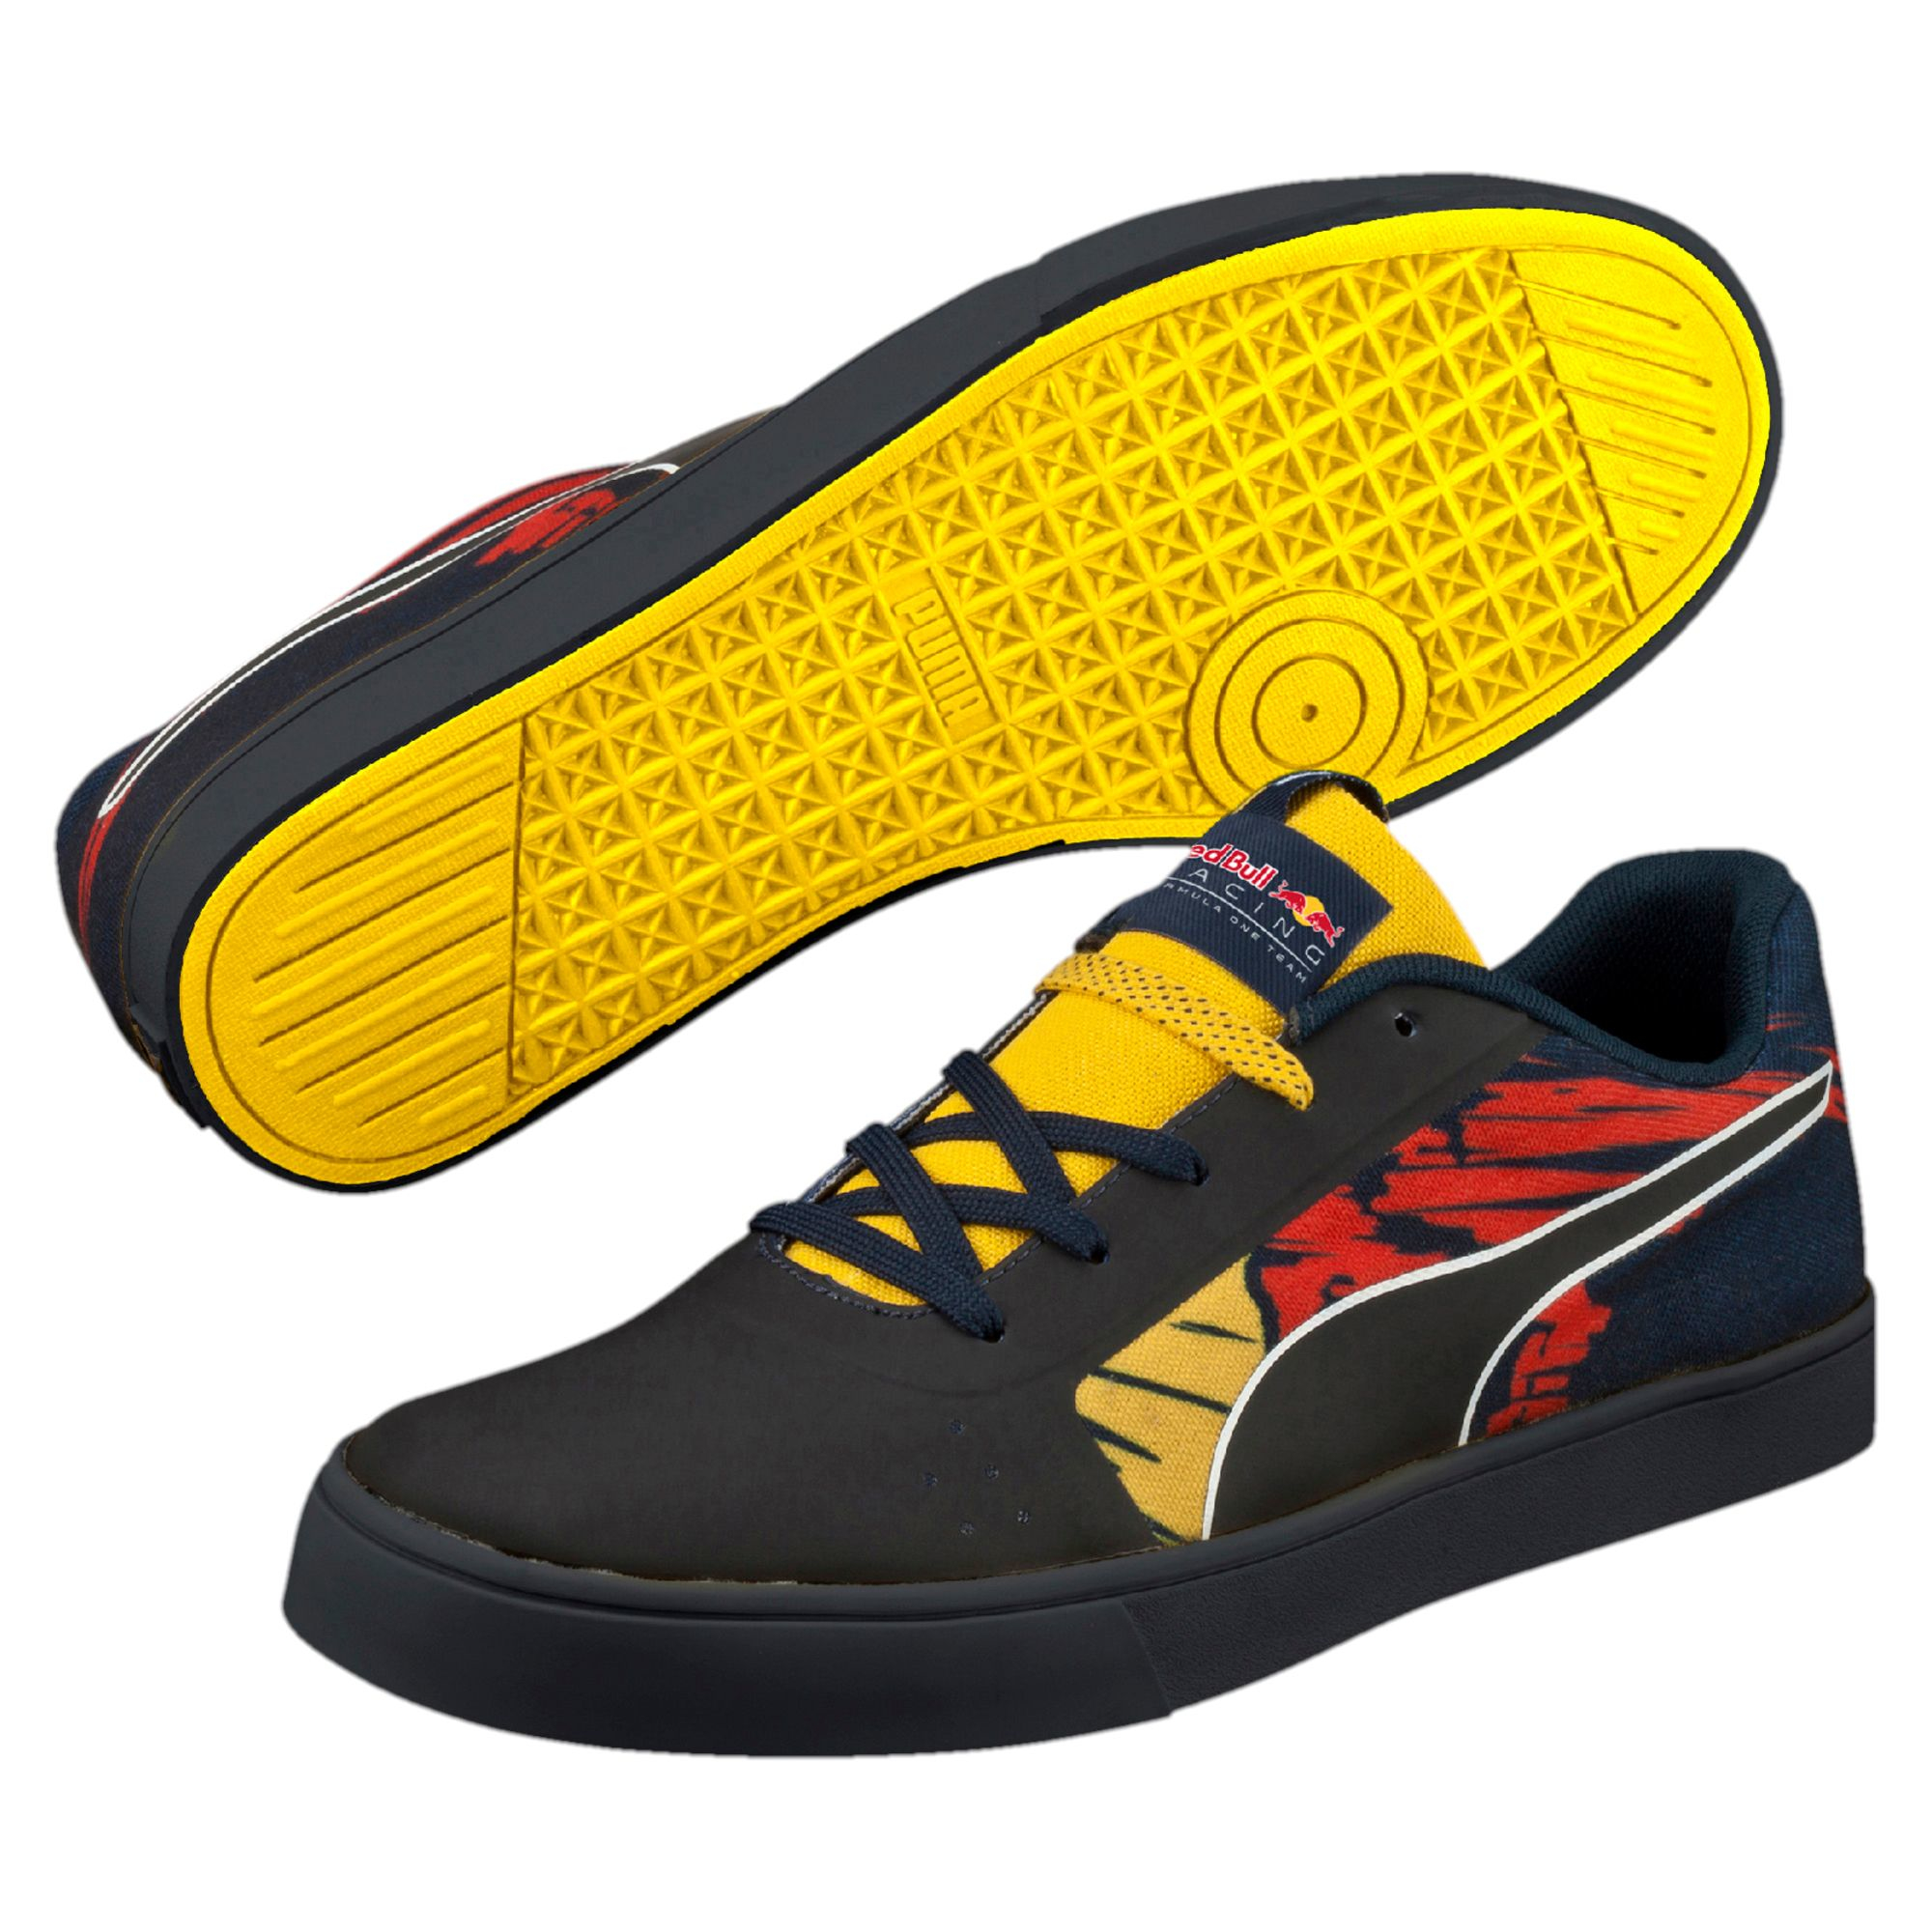 lyst puma red bull racing wings vulc xtrem men 39 s shoes in yellow for men. Black Bedroom Furniture Sets. Home Design Ideas